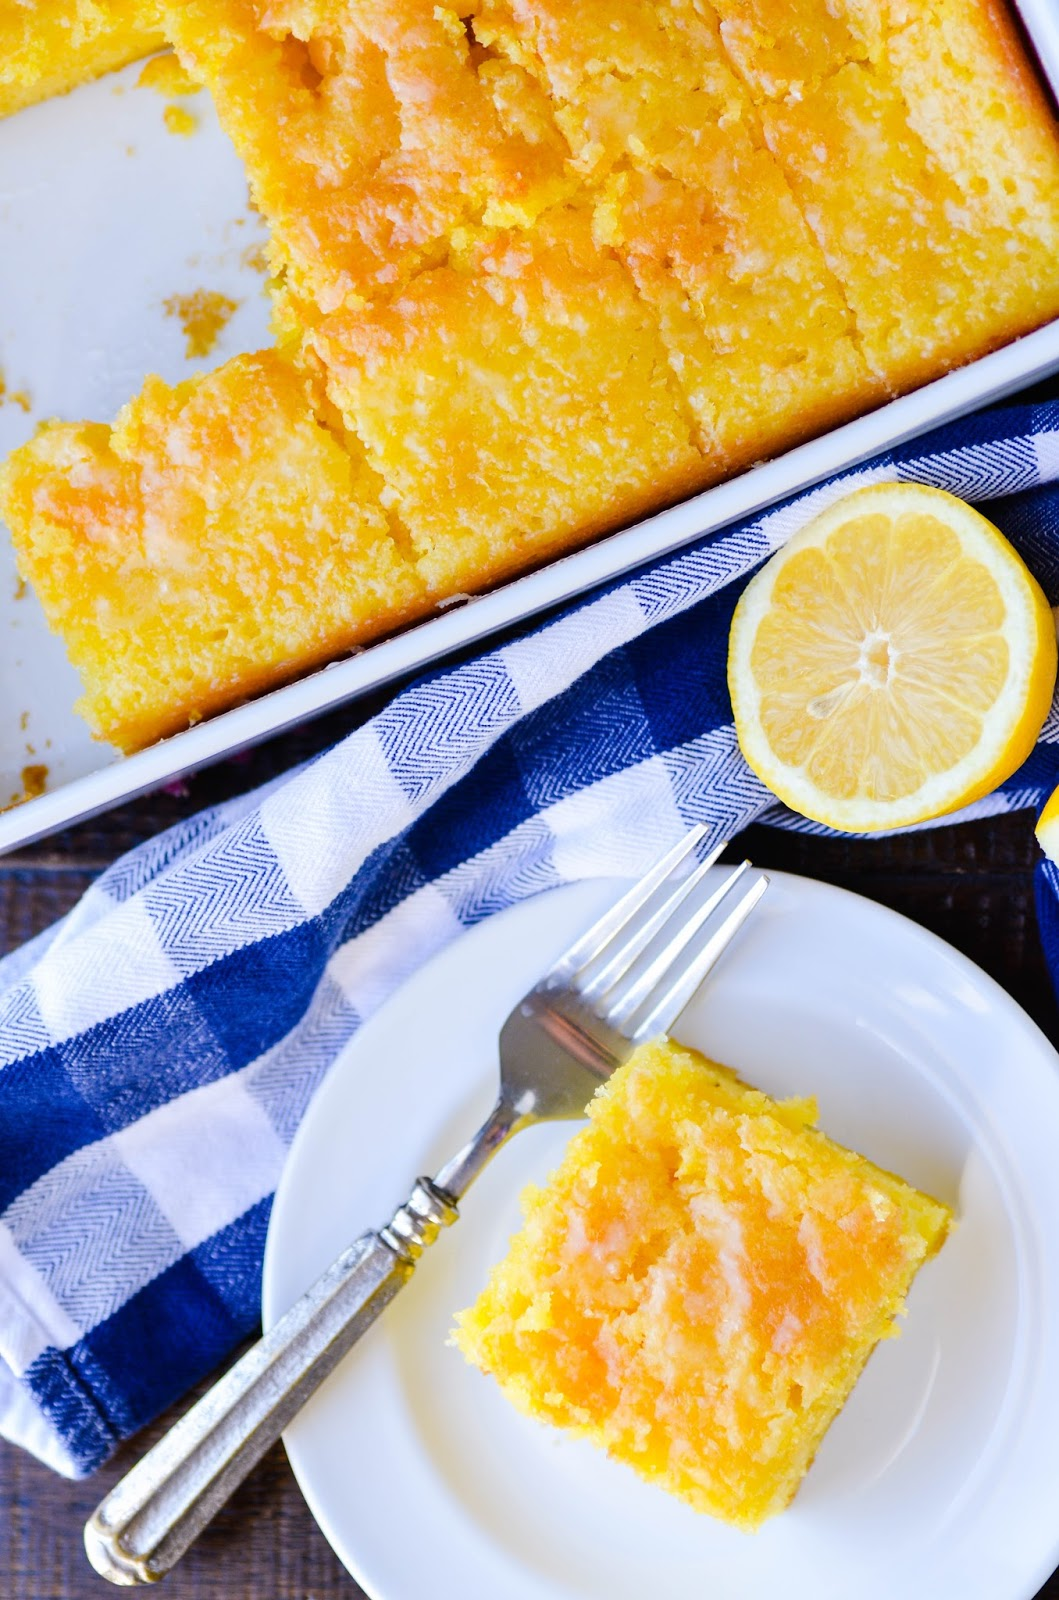 This lemon cake is incredibly simple, but don't let that fool you! It's supremely moist and bursting with springtime lemon flavor.